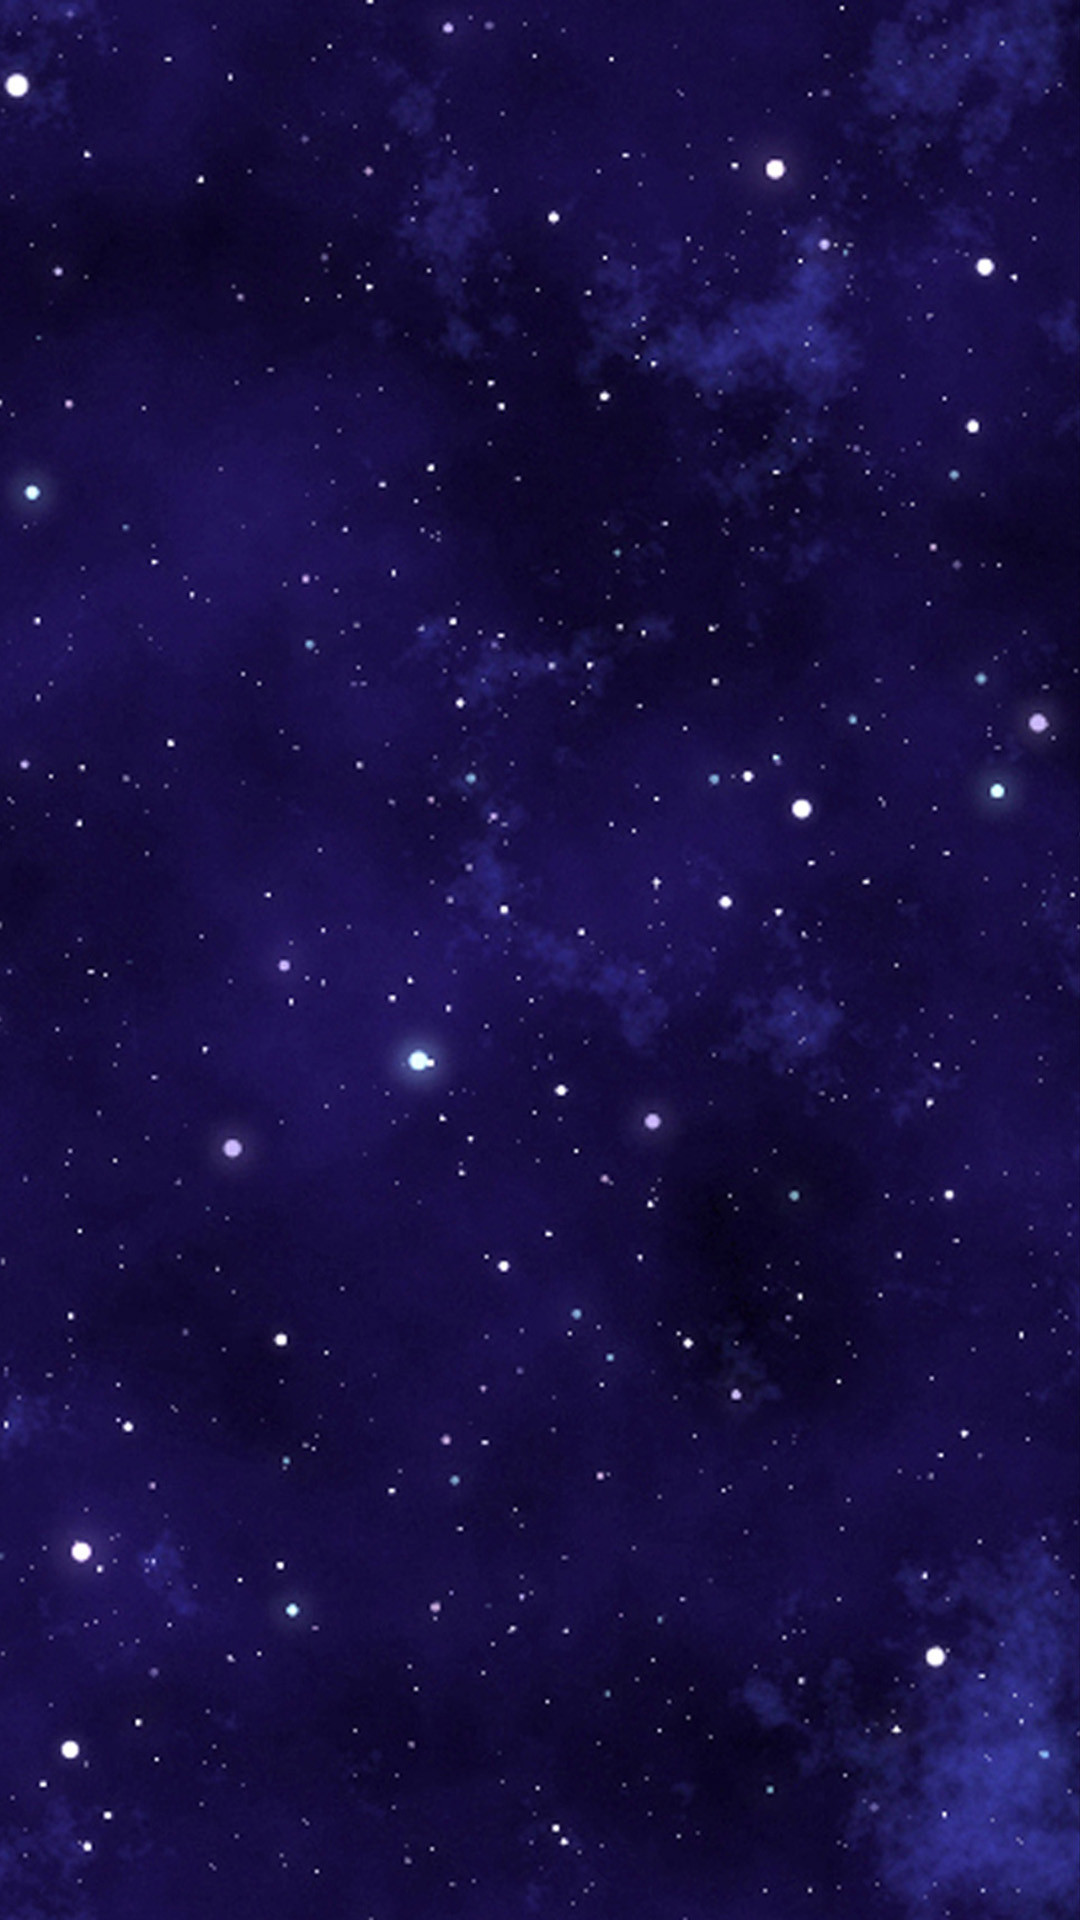 Space Wallpapers for iPhone 6 Plus 62, iPhone 6 Plus Wallpaper